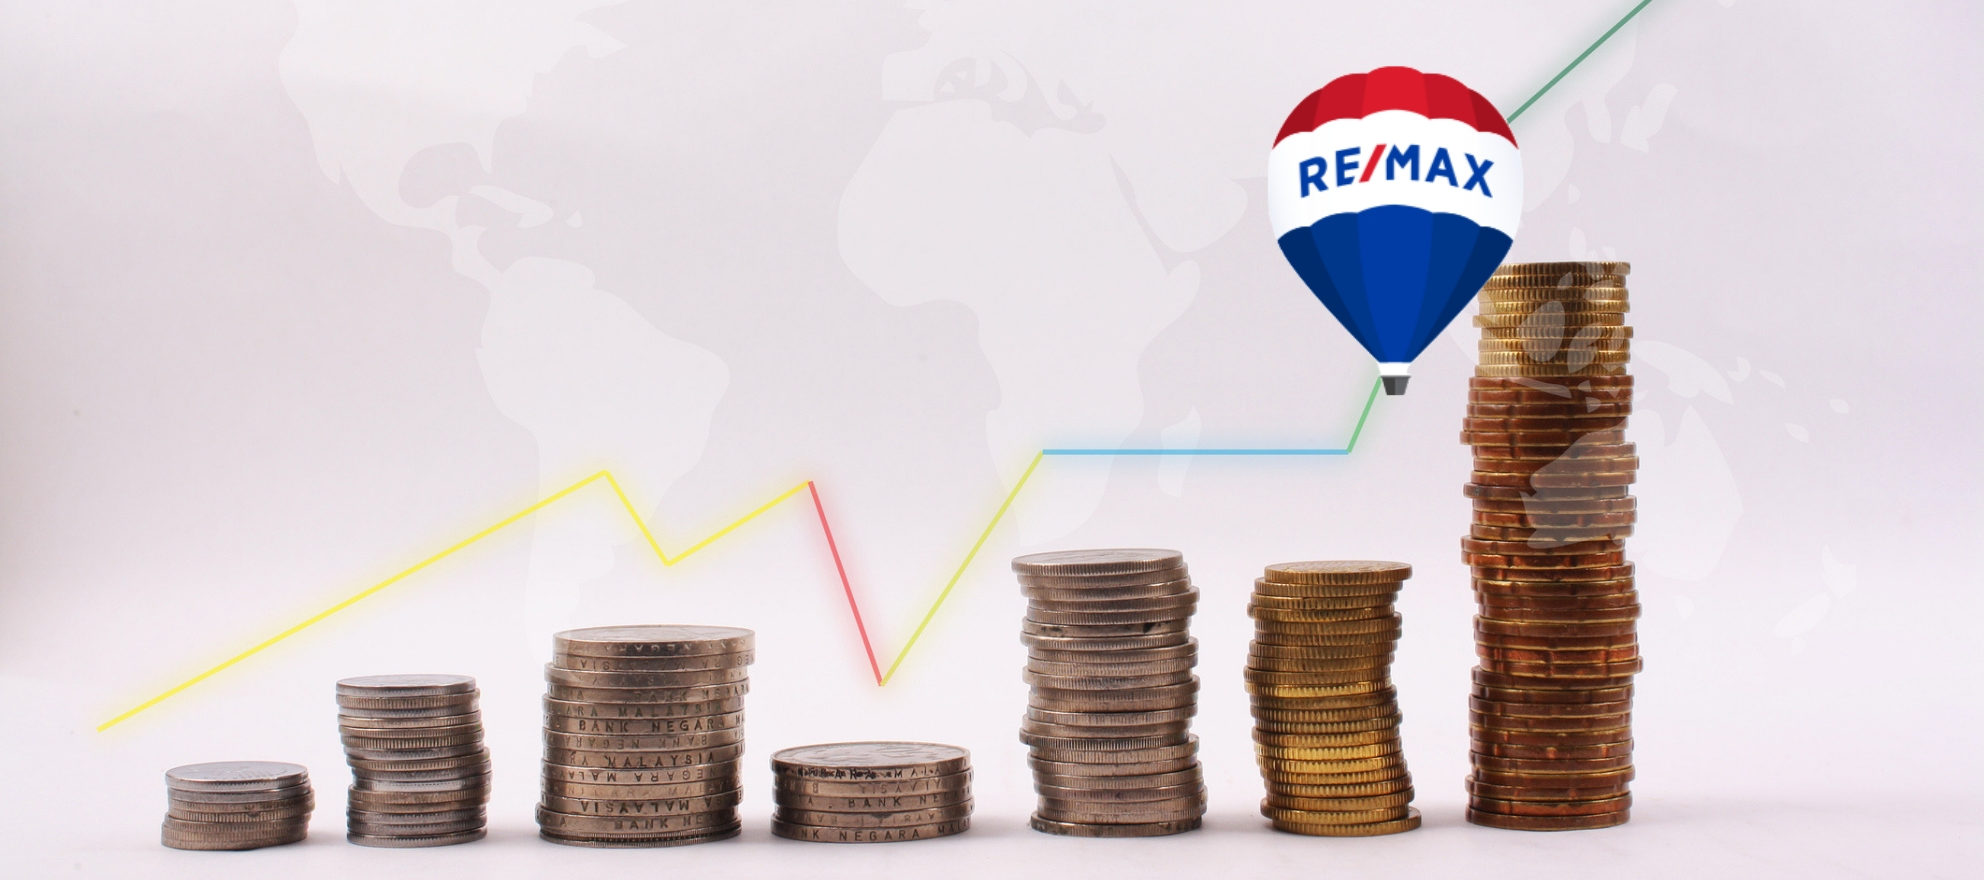 RE/MAX beats estimates with $71.2M revenue in Q1 2019